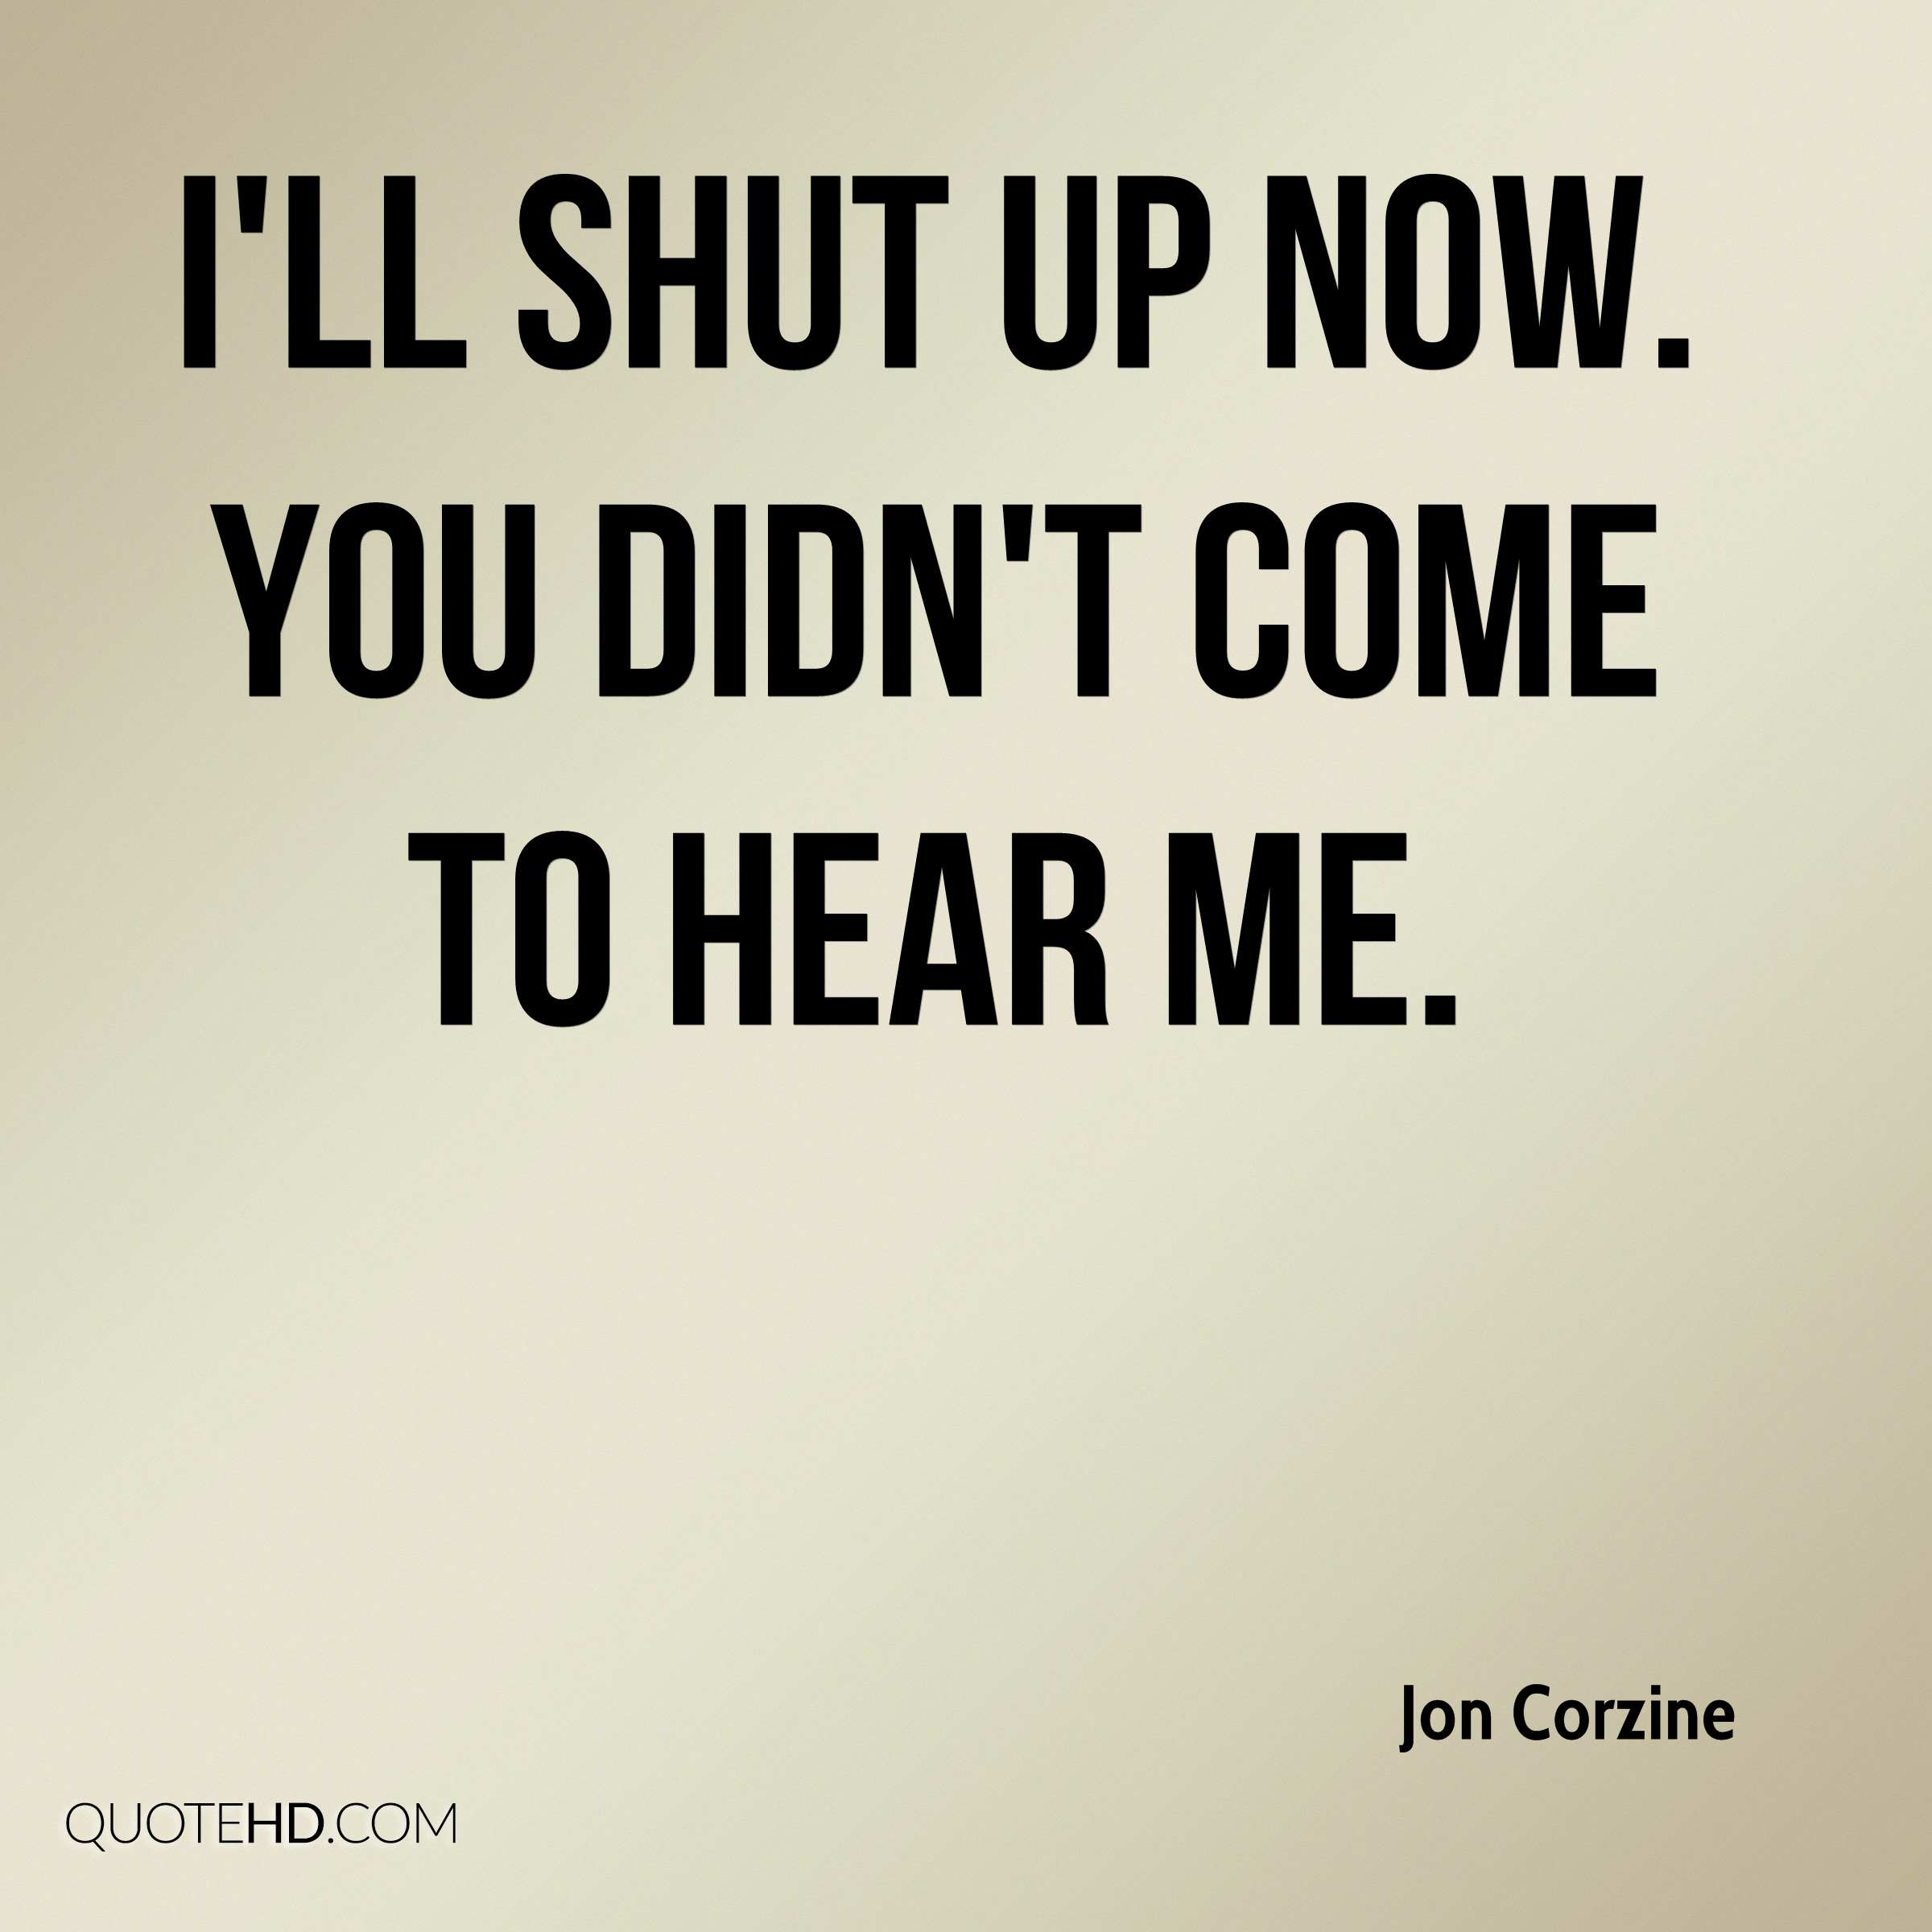 I'll shut up now. You didn't come to hear me.